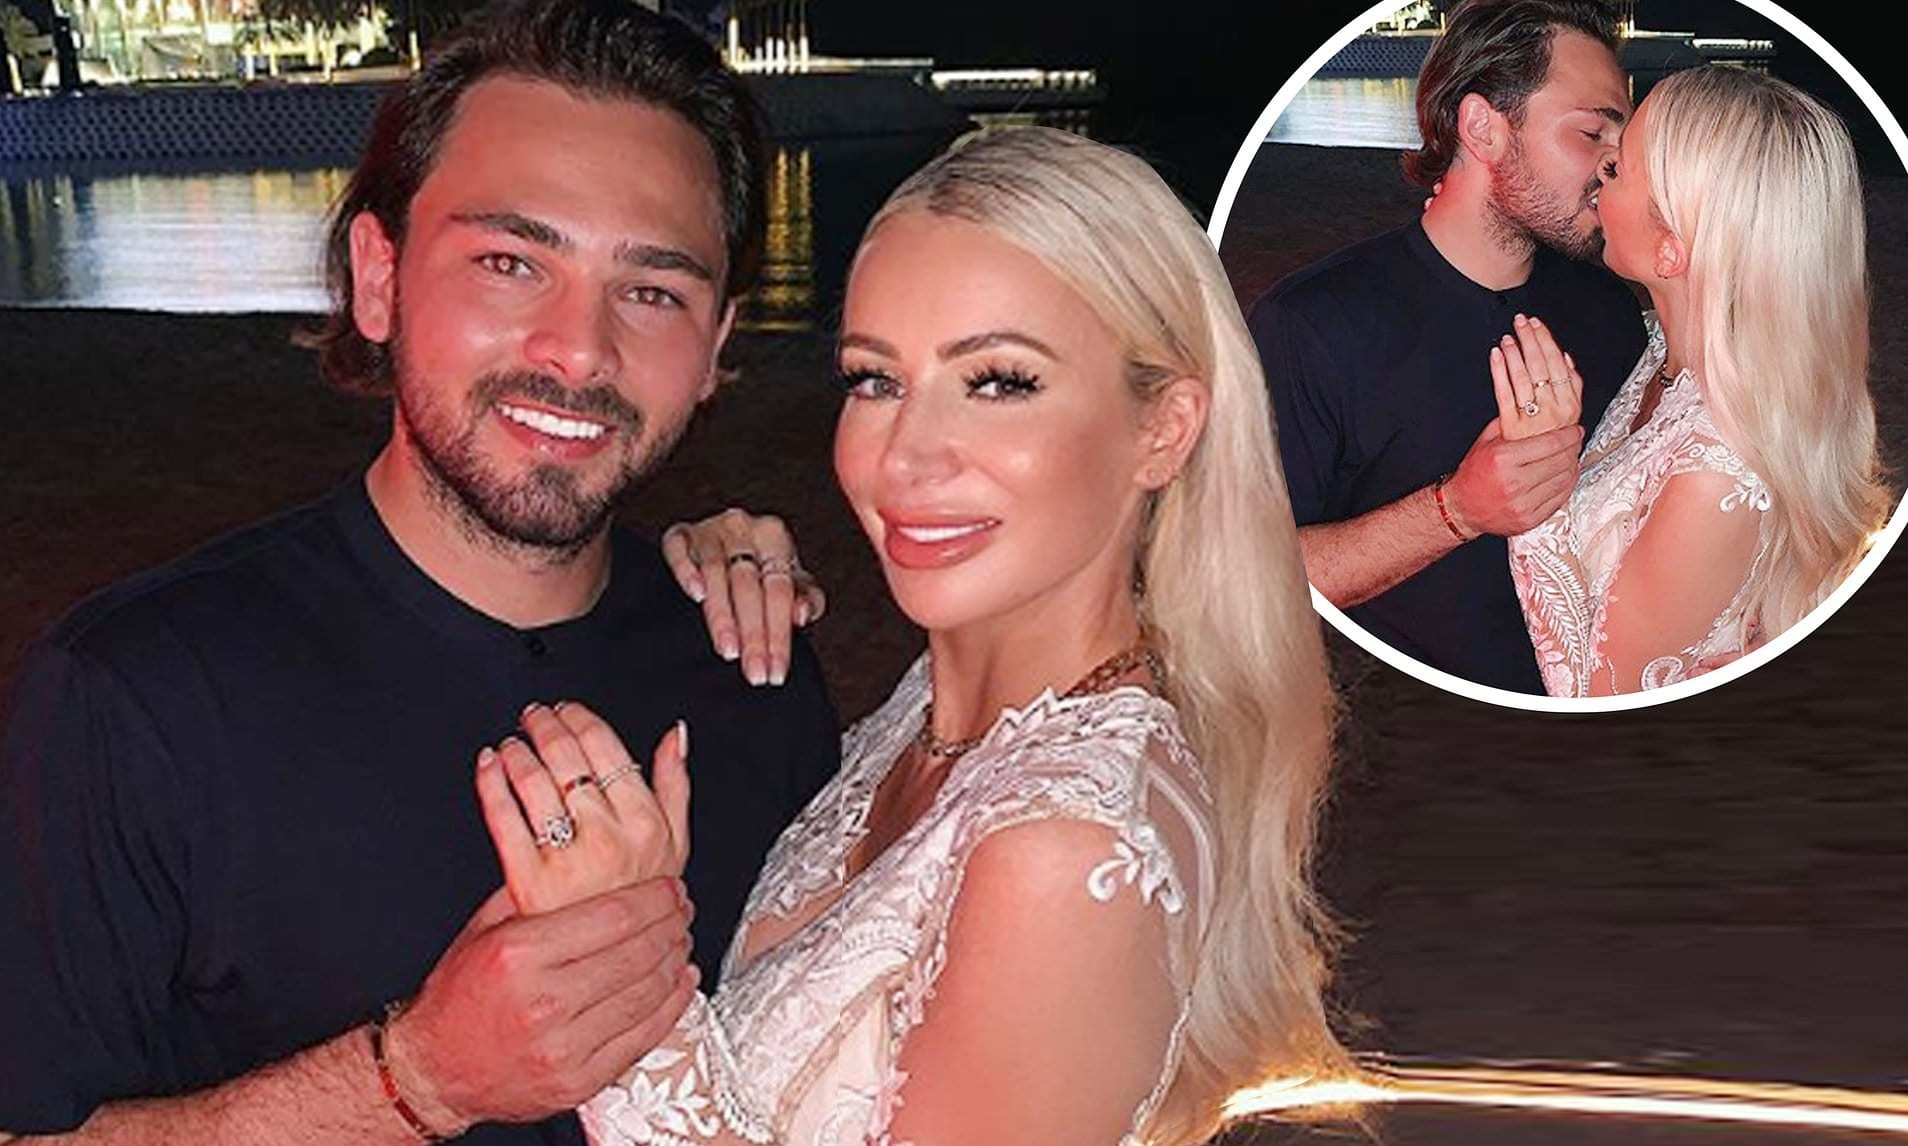 Who is Olivia Attwood dating?